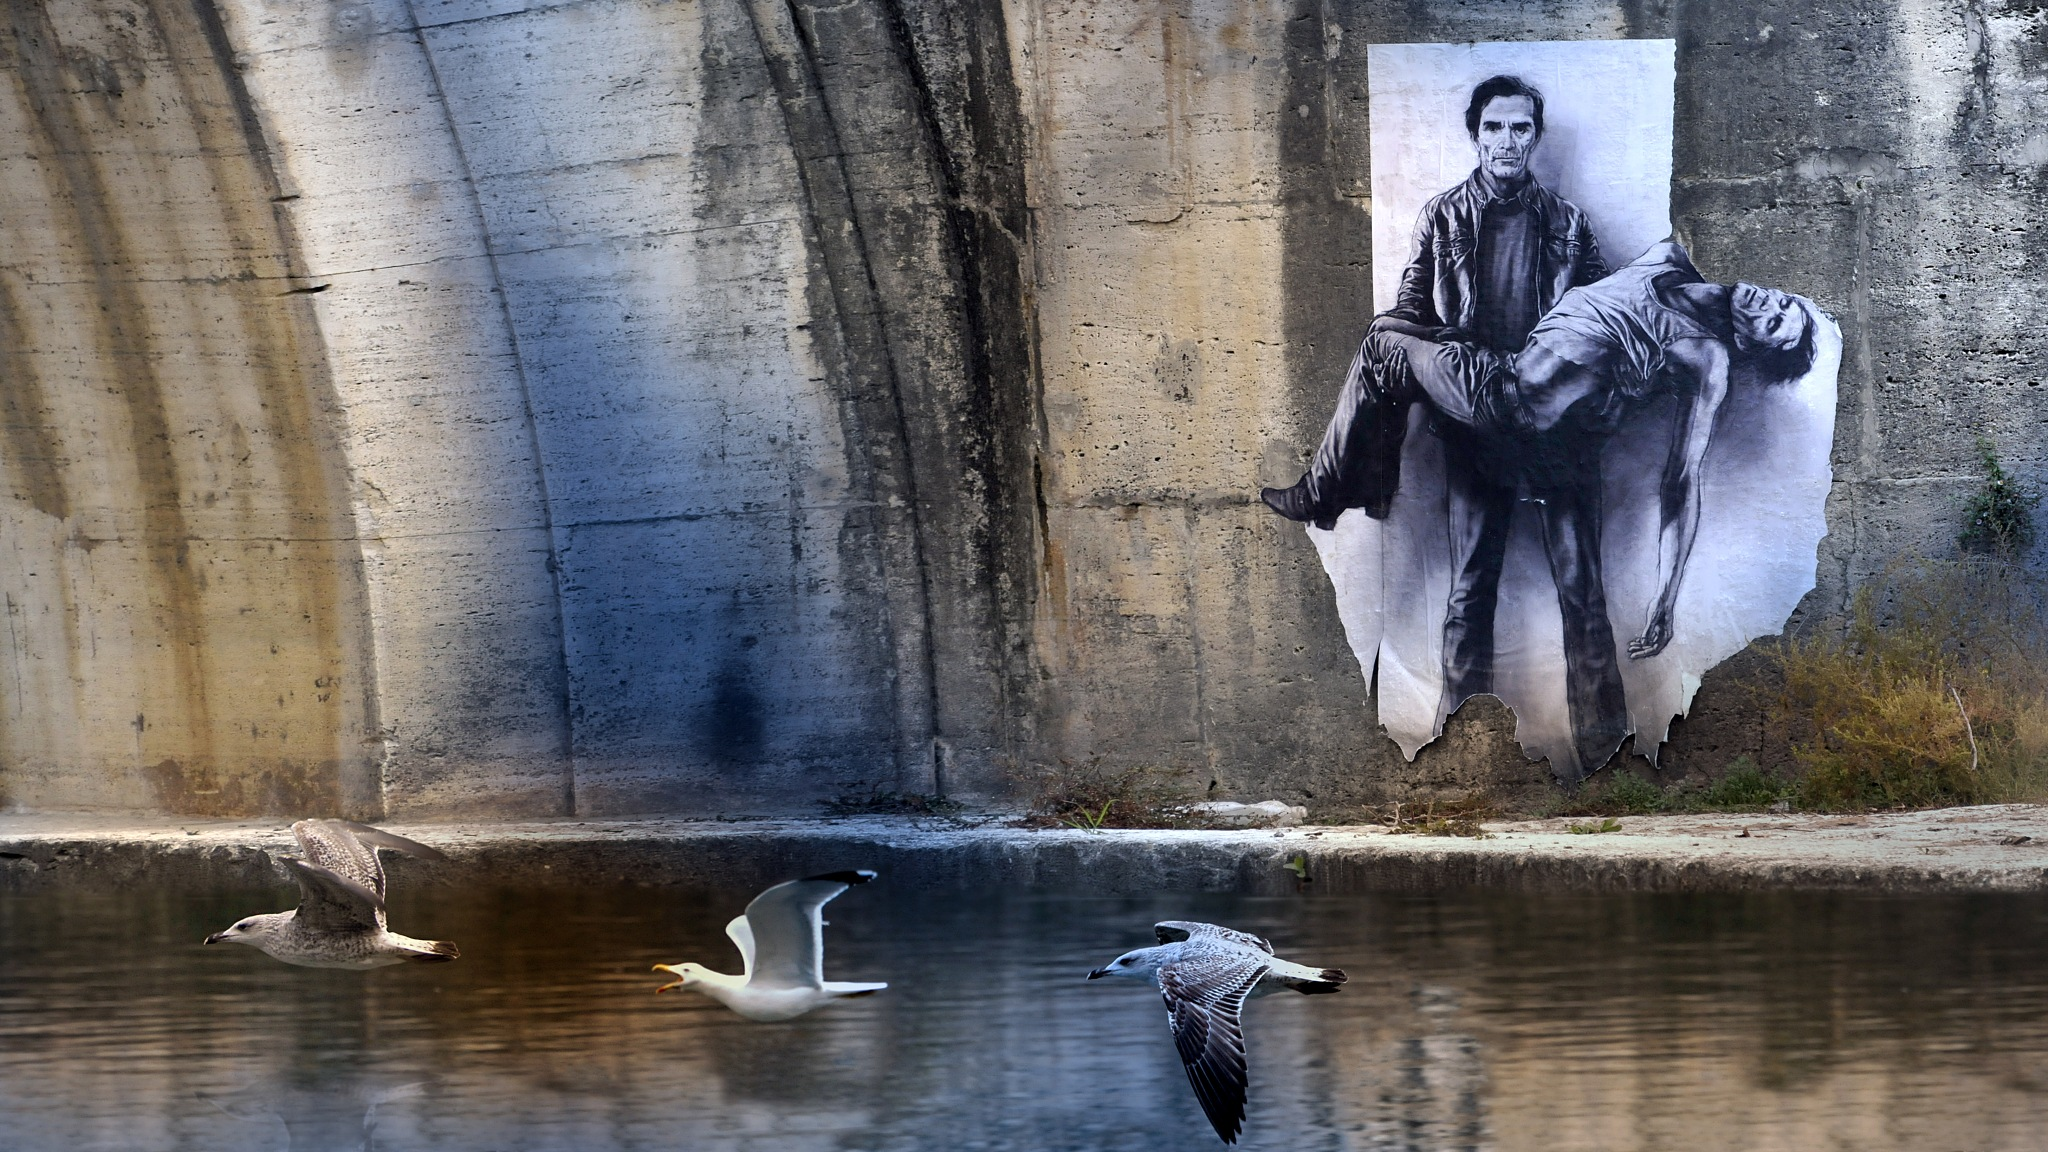 Pity  (Pasolini by Ernest Pignon Ernest) by Roberto Macrì